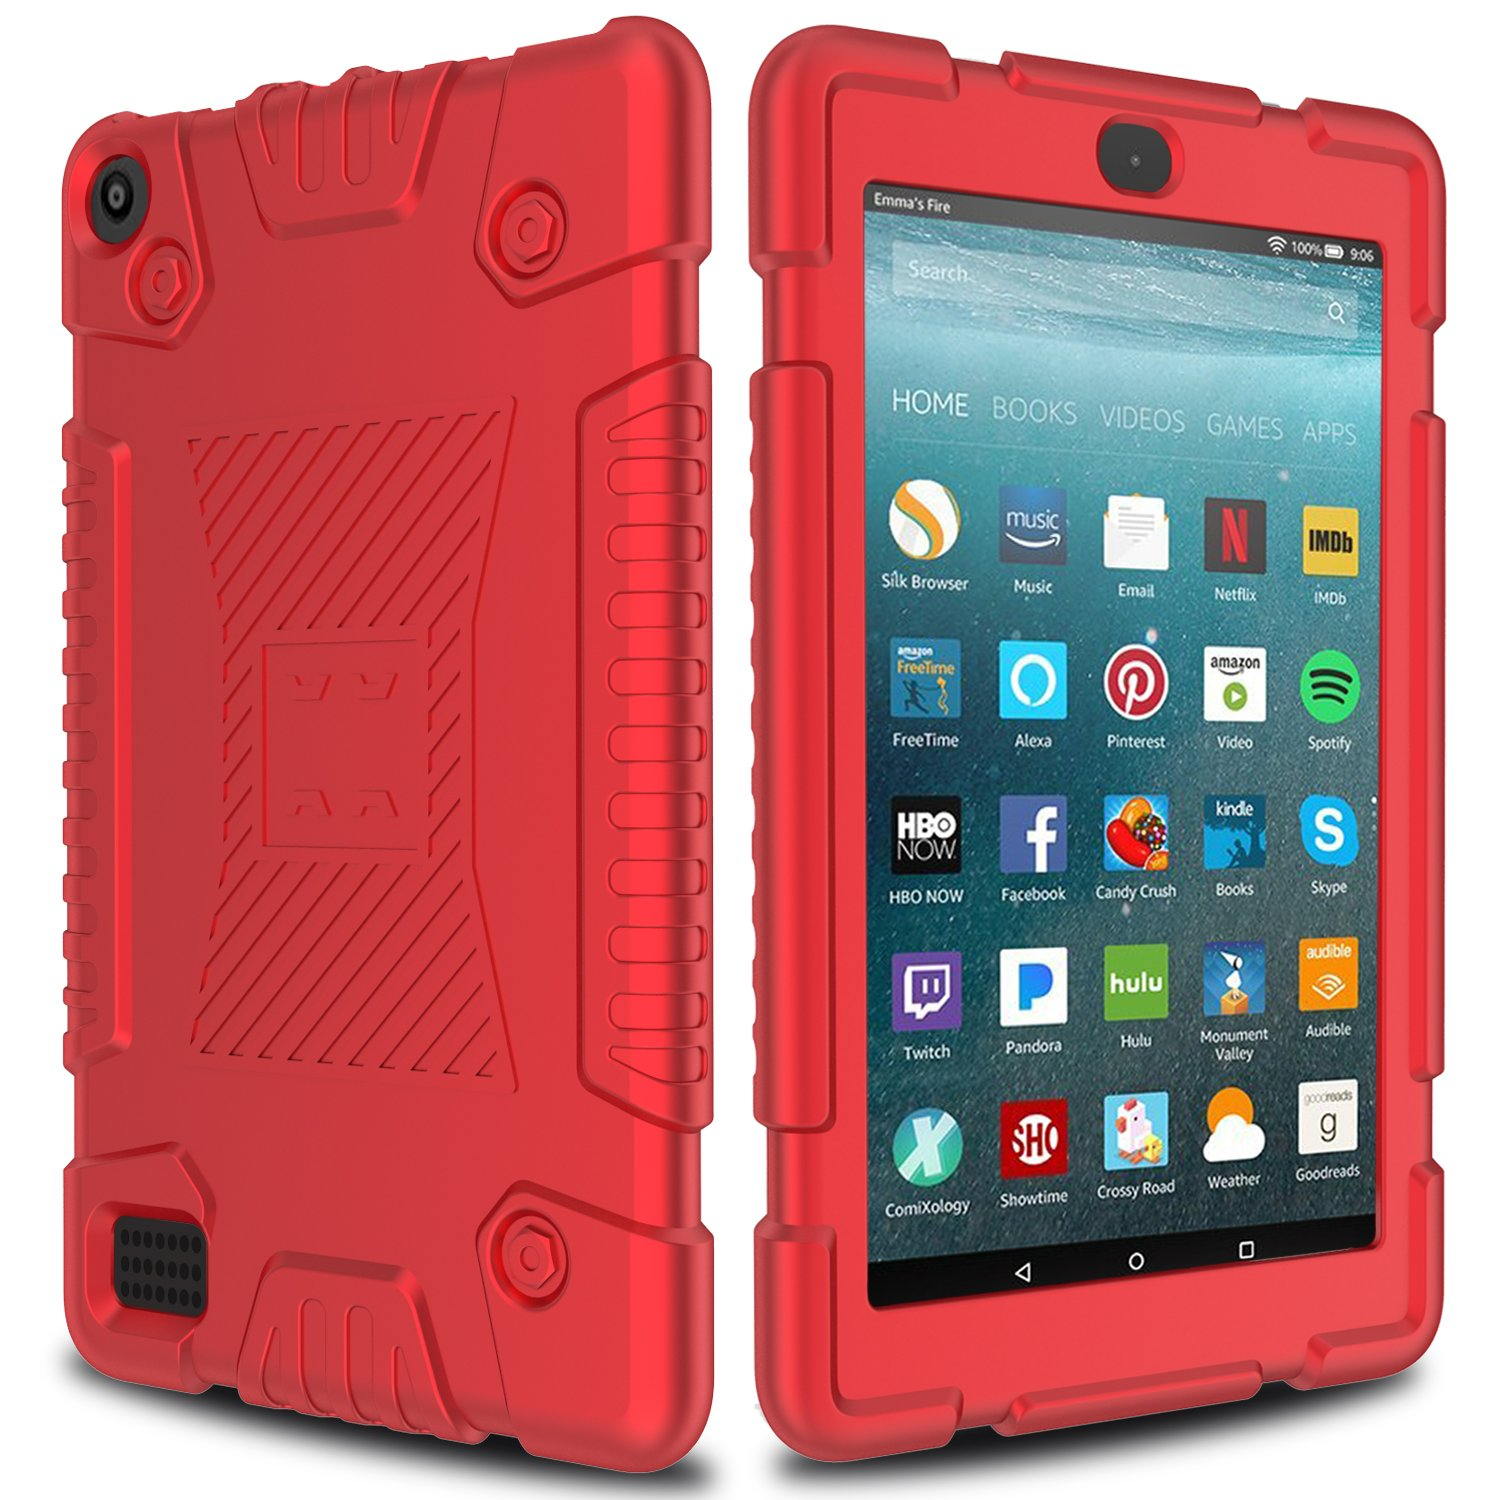 All-New Amazon Fire 7 Silicone Case, Elegant Choise Anti-Slip Shockproof Soft Silicone Kid Friendly Protective Case Cover for All-New Amazon Fire HD 7 Table (7th Generation) 2017 Release (Red)